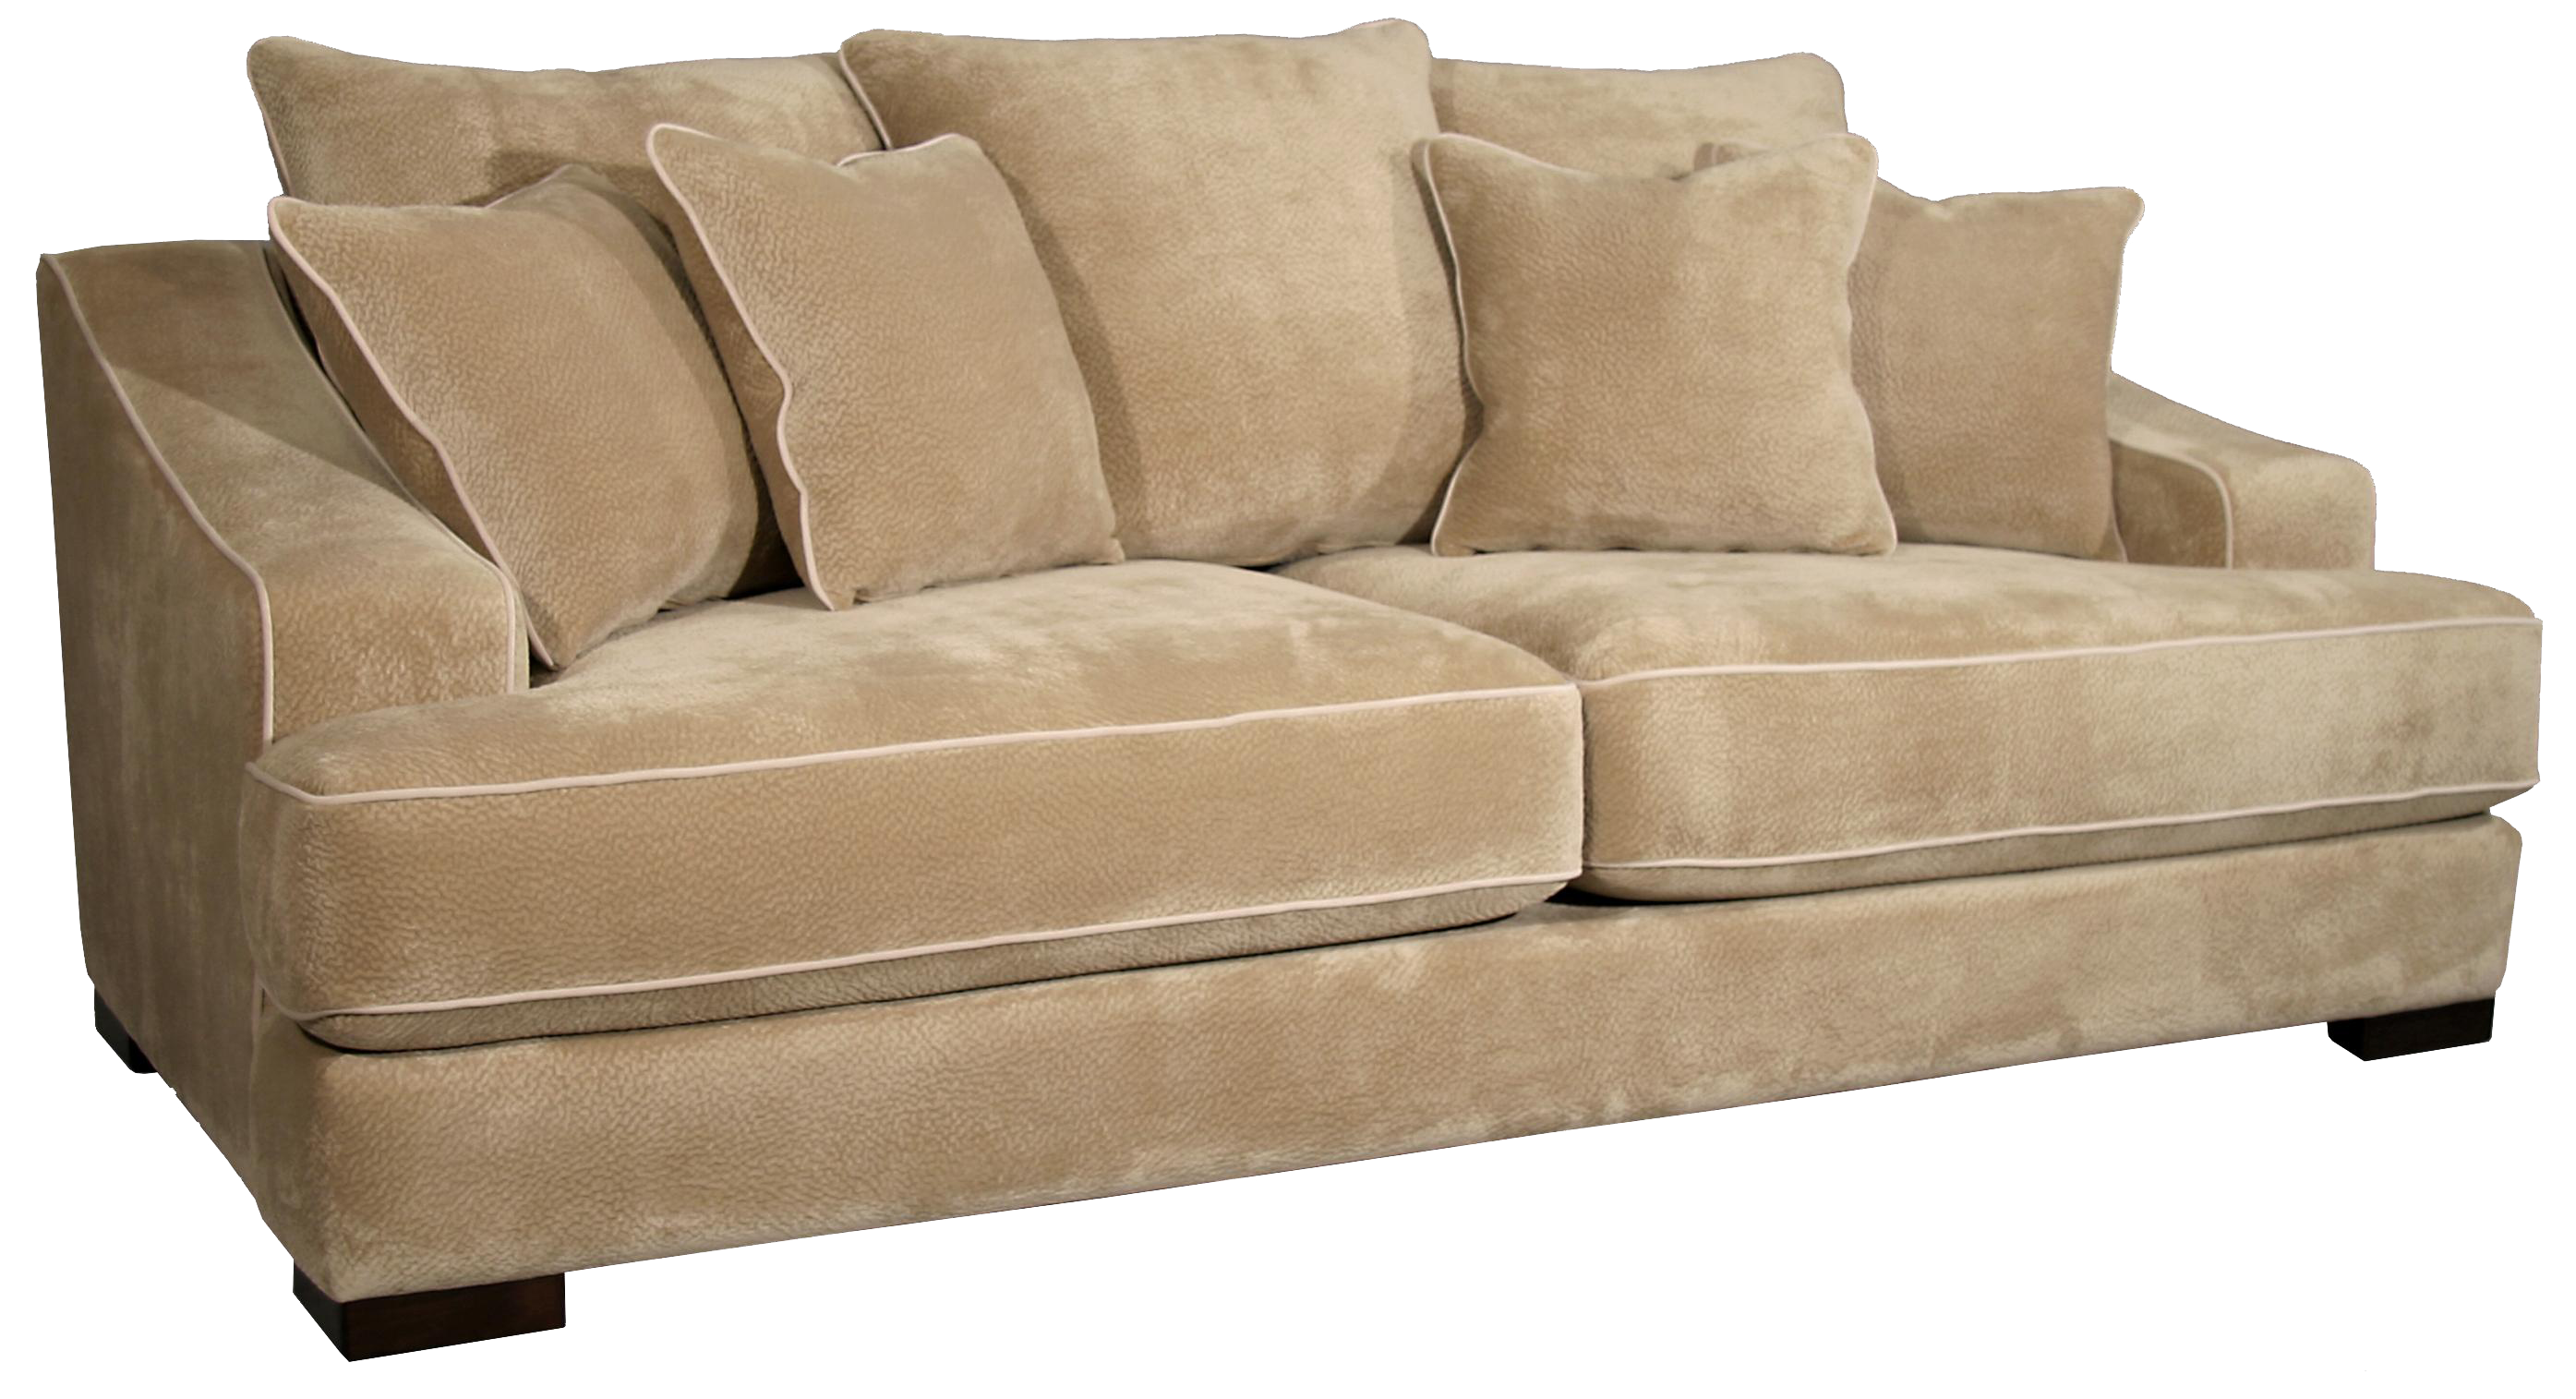 Cooper sofa png background. Furniture clipart love seat